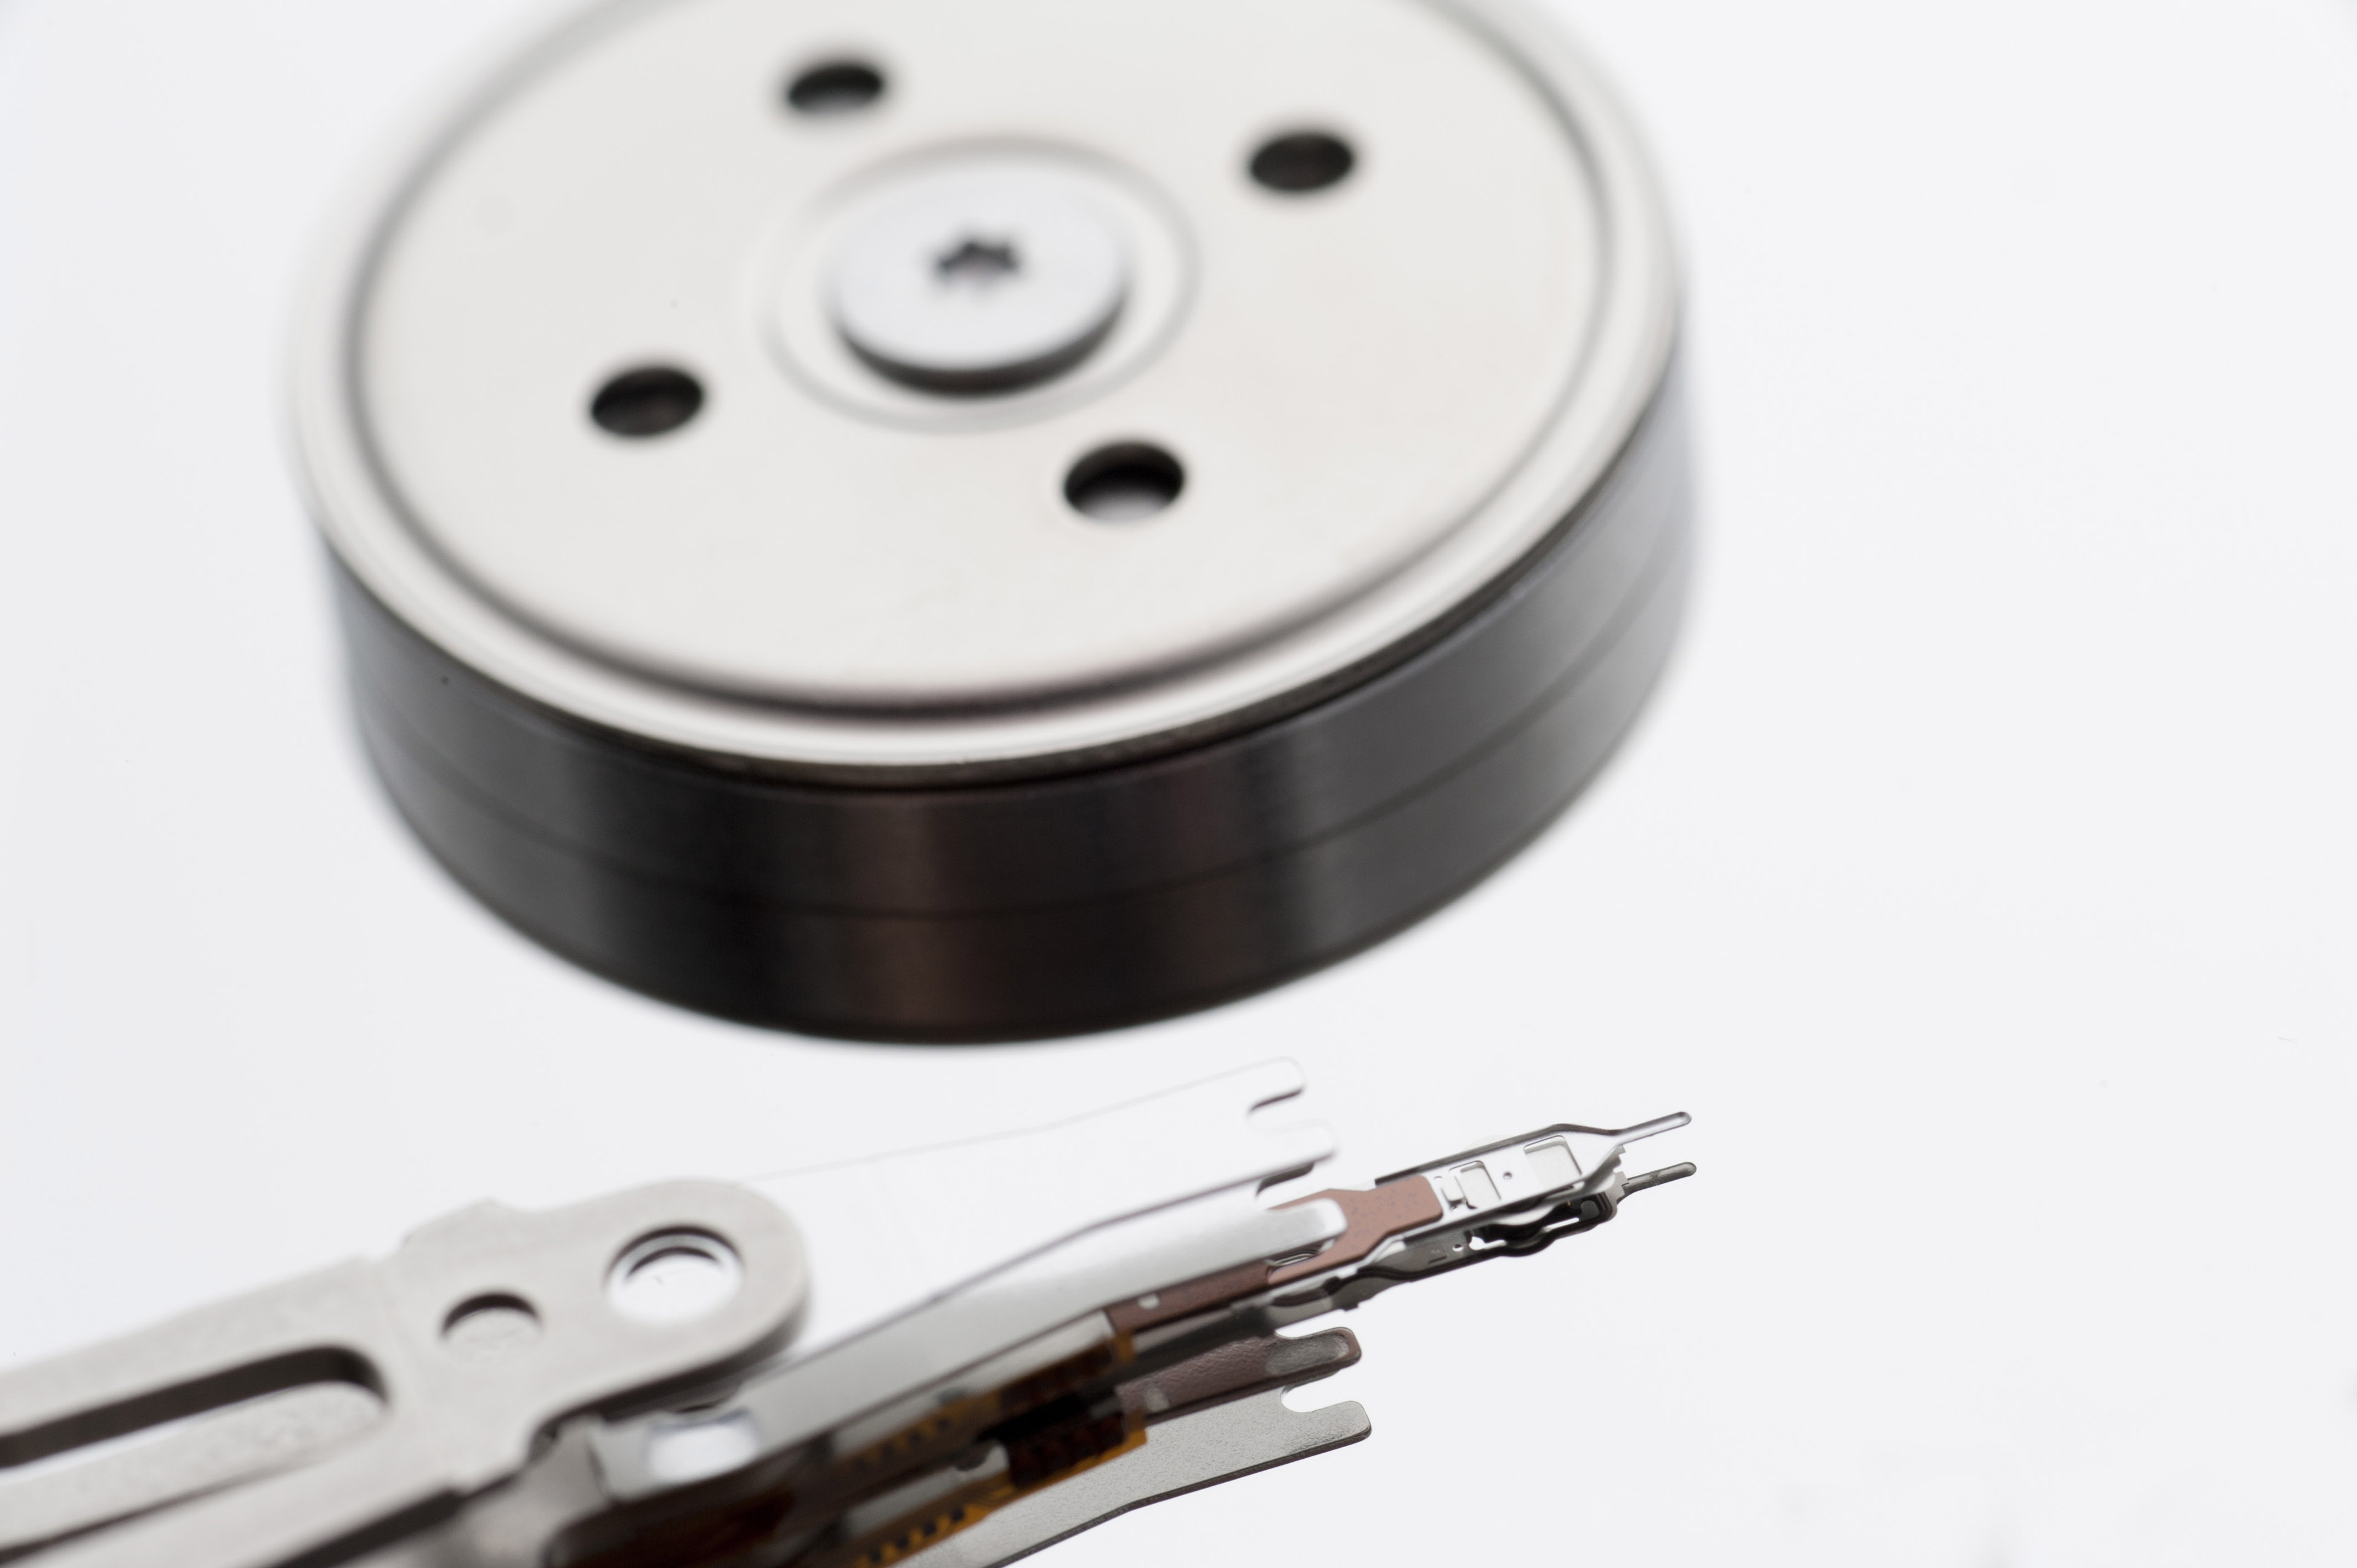 A close up of the internal components and parts of a computer hard disk isolated on a white background with copy space.